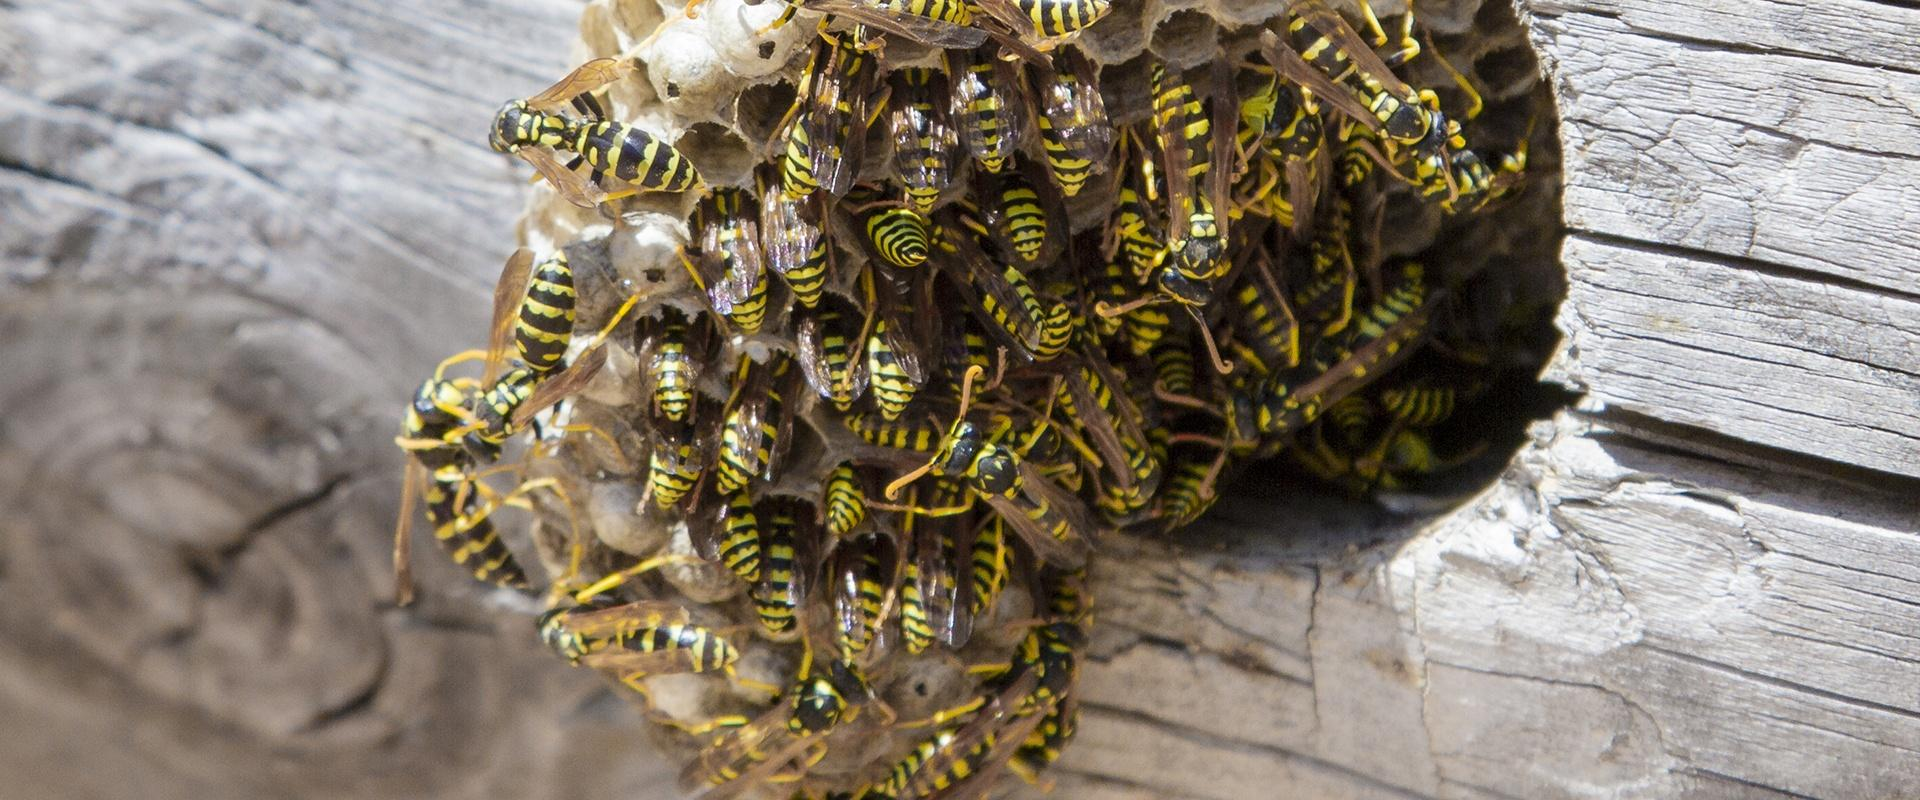 a colony of wasps on their nest